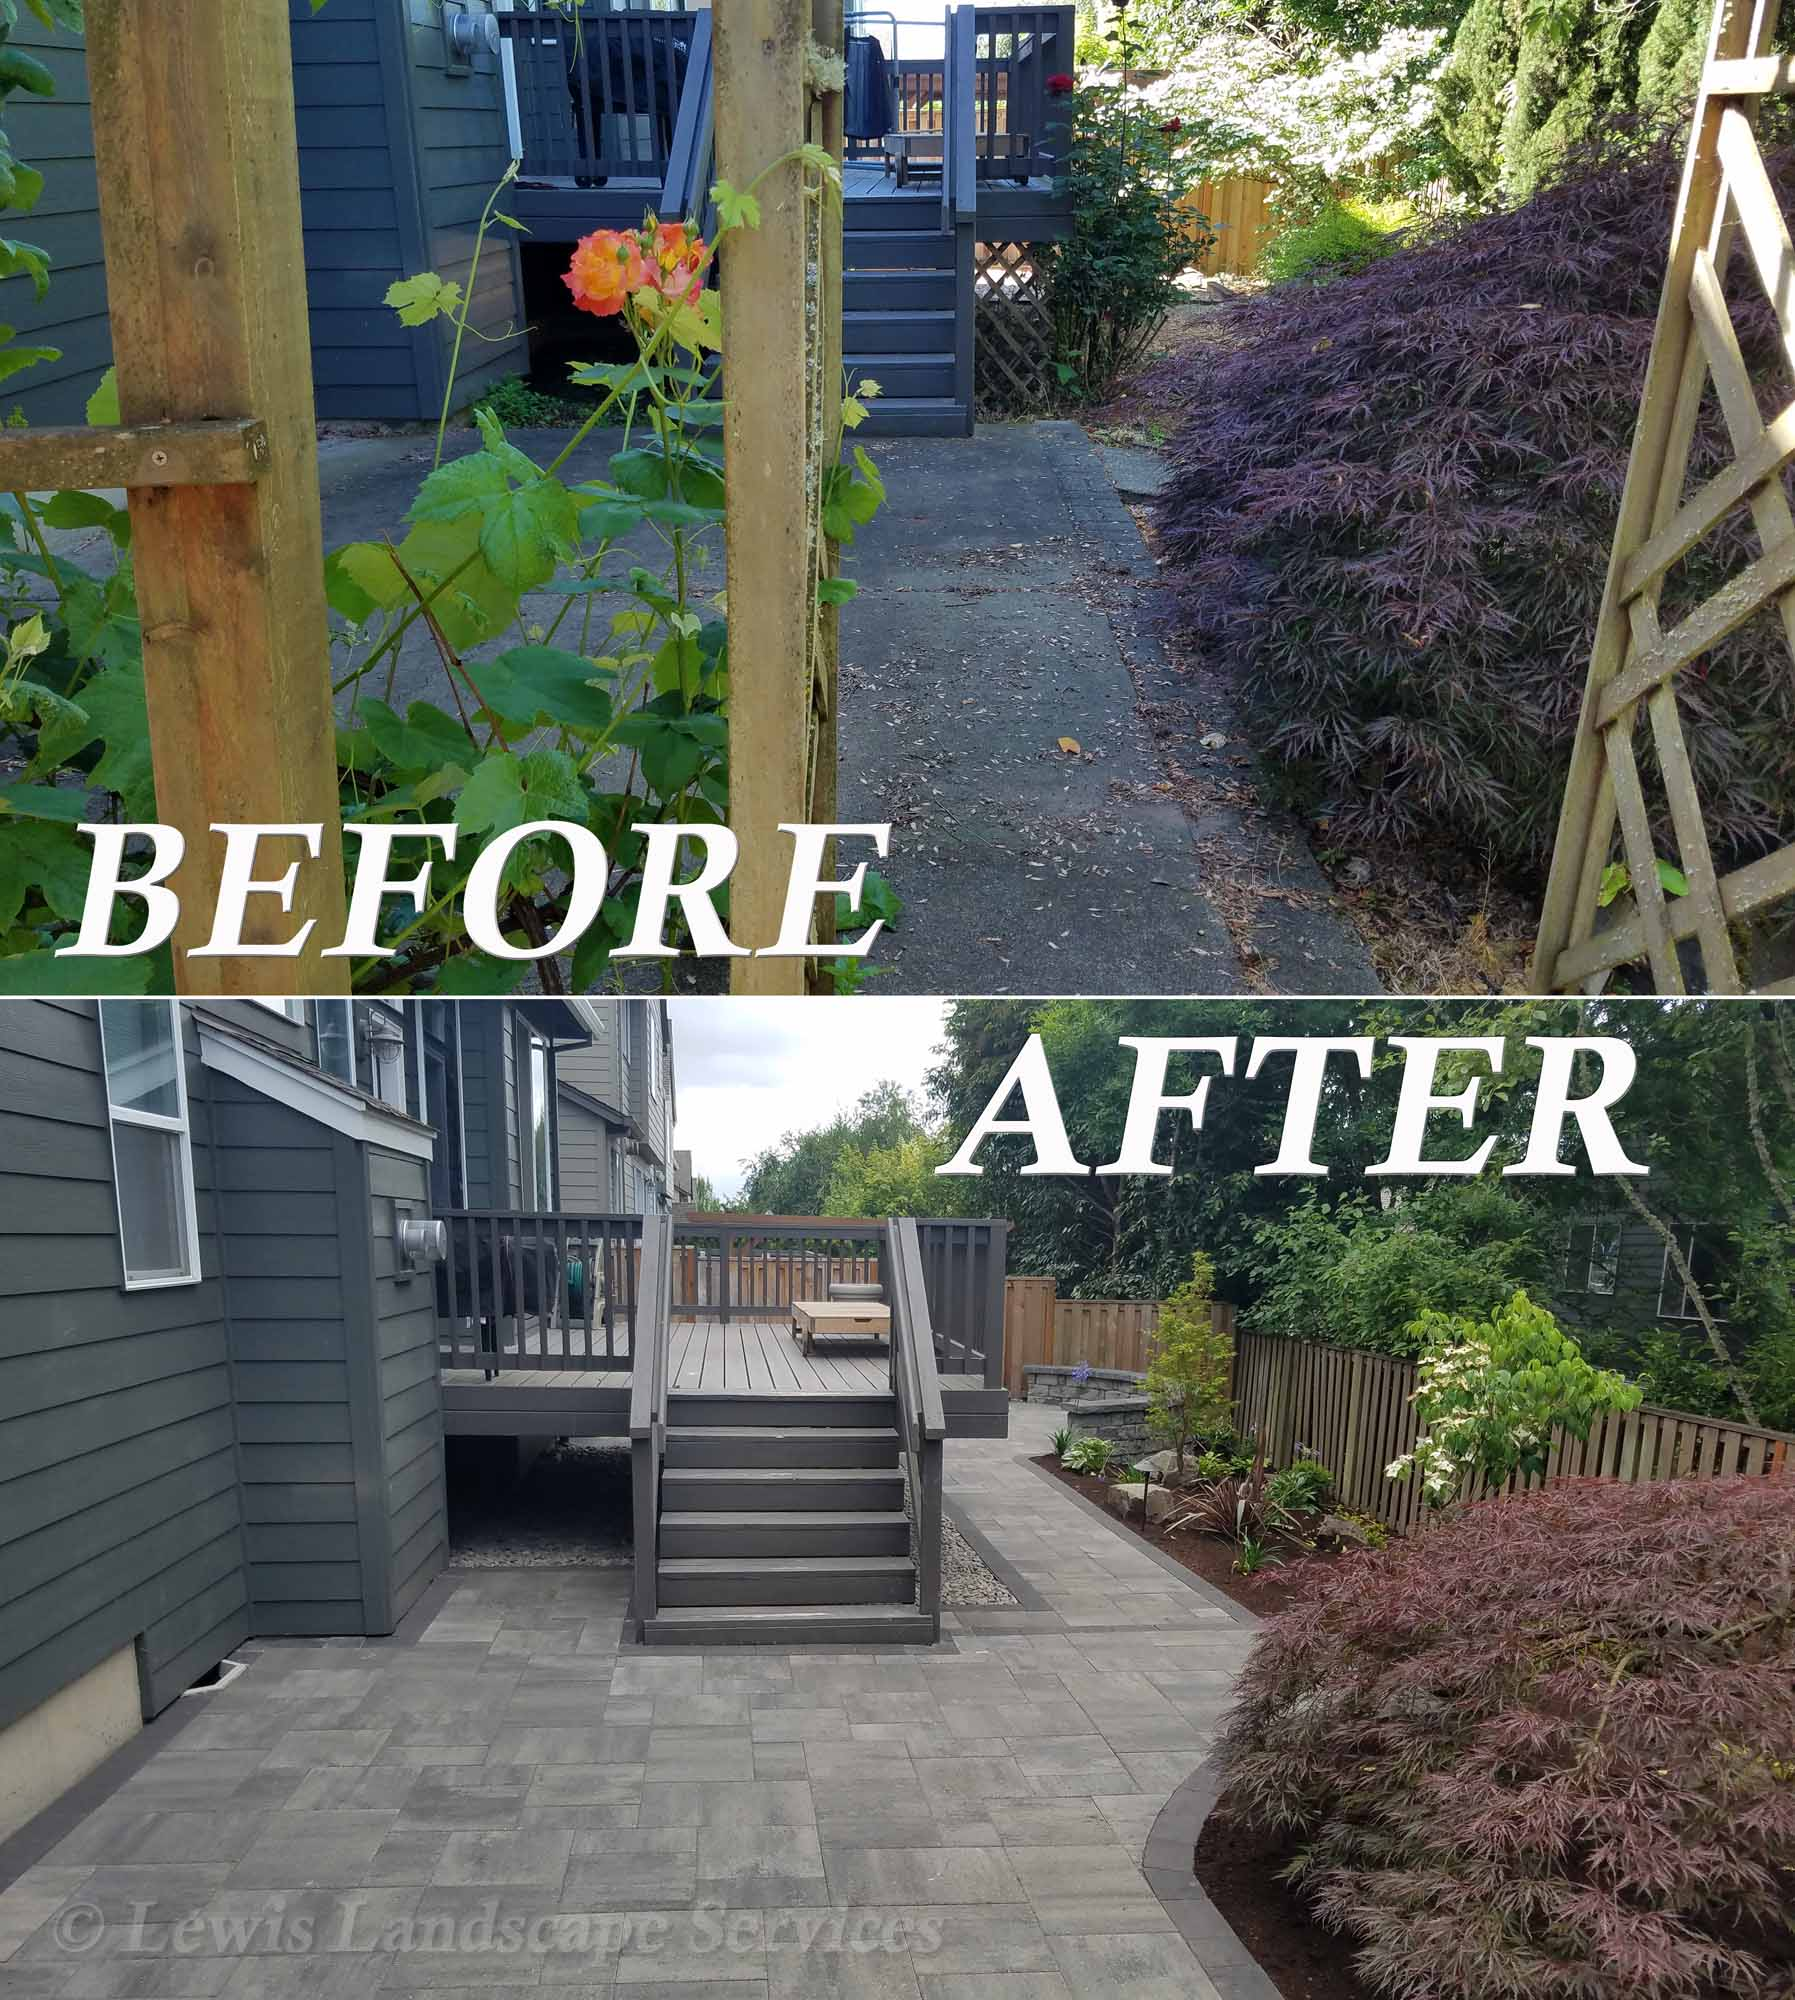 Before-After of Project